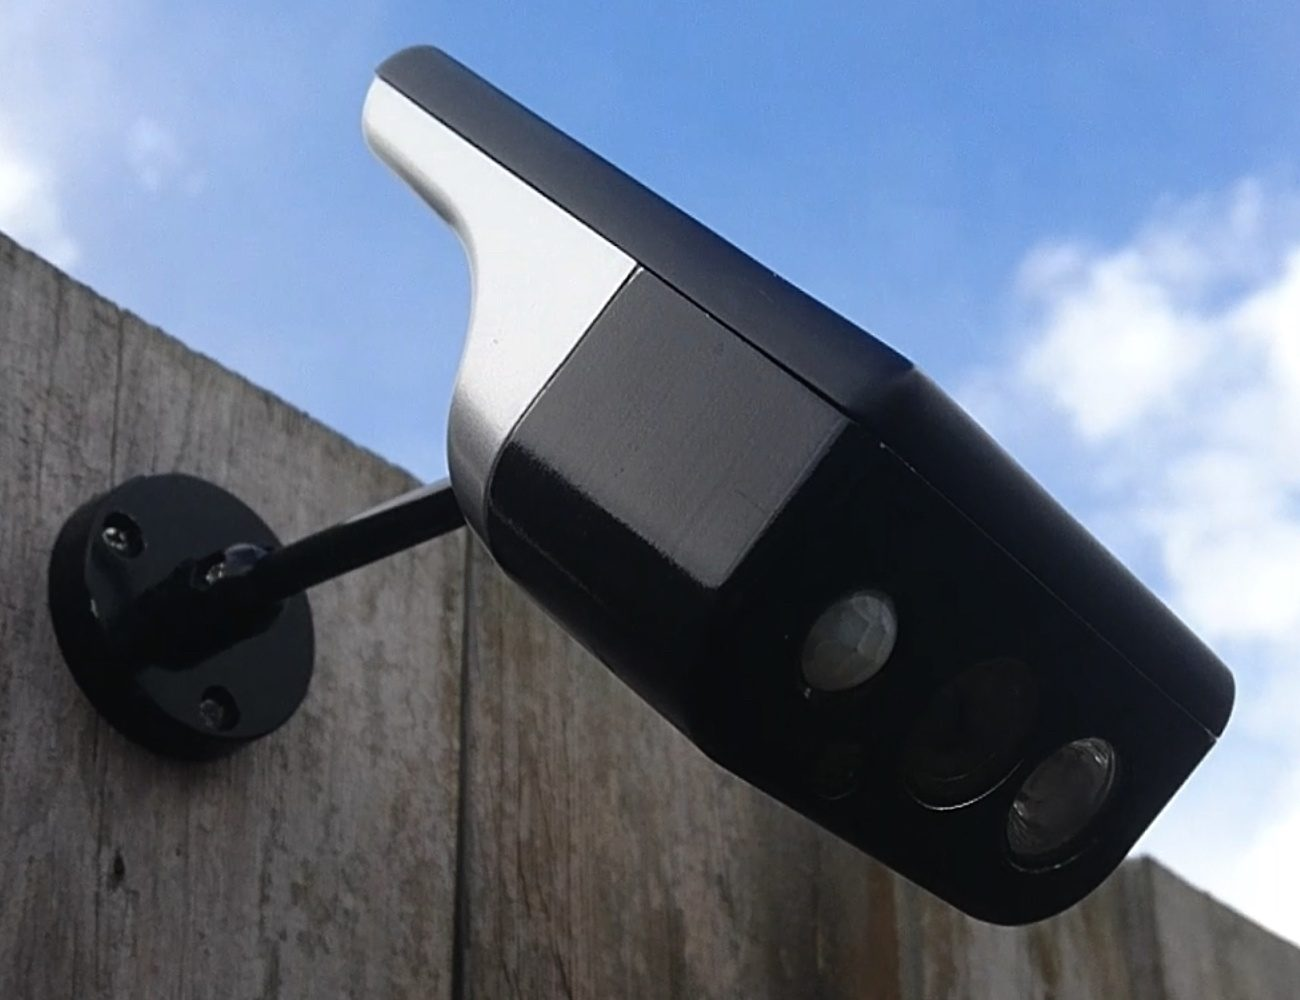 The Solar Cam is a truly wireless security camera